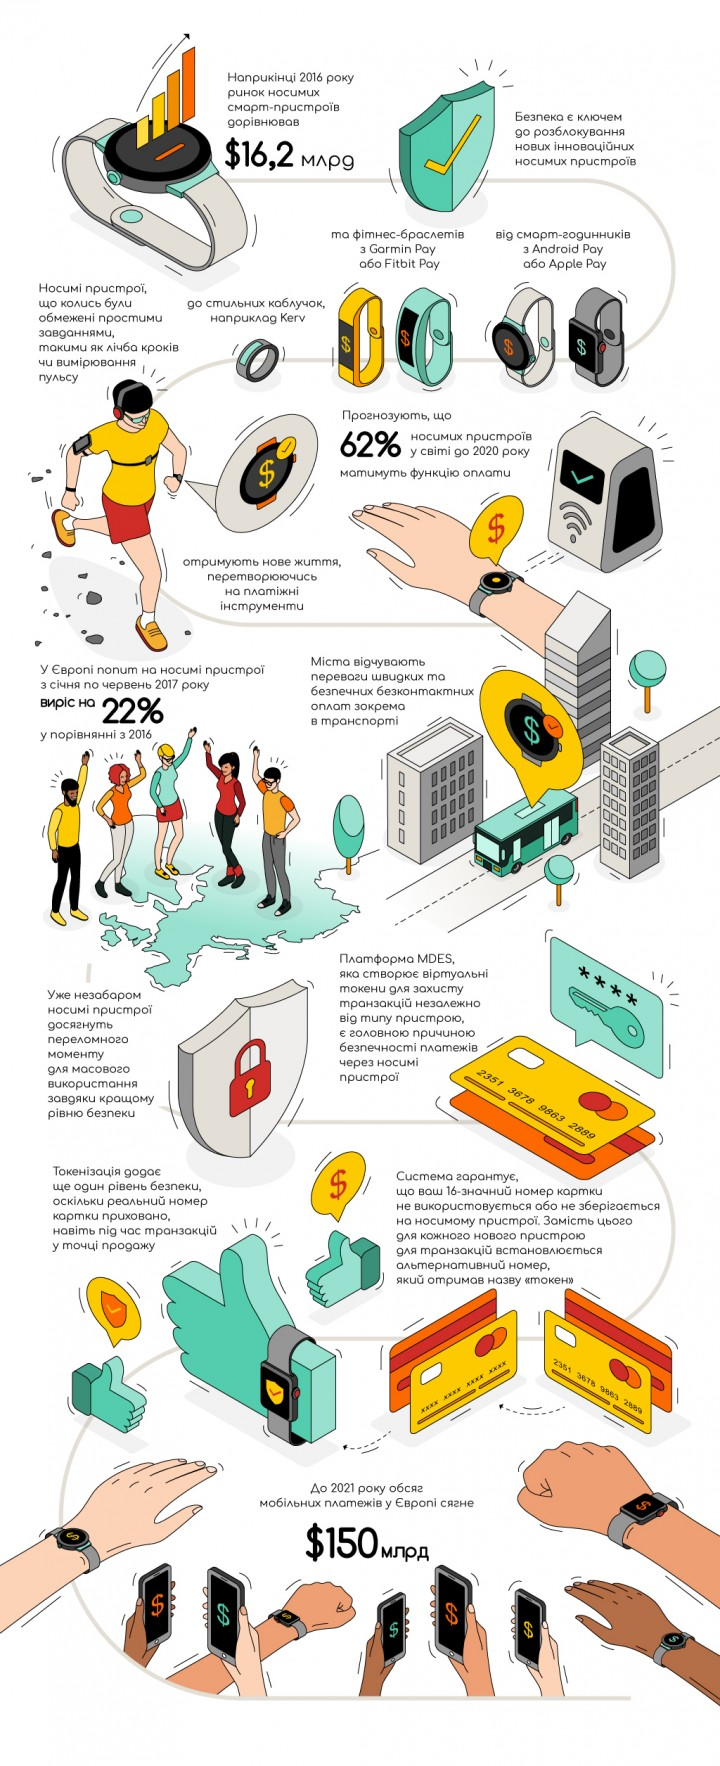 Mastercard_Wearables_Toolkit_Jan_2018_Infographic_UA